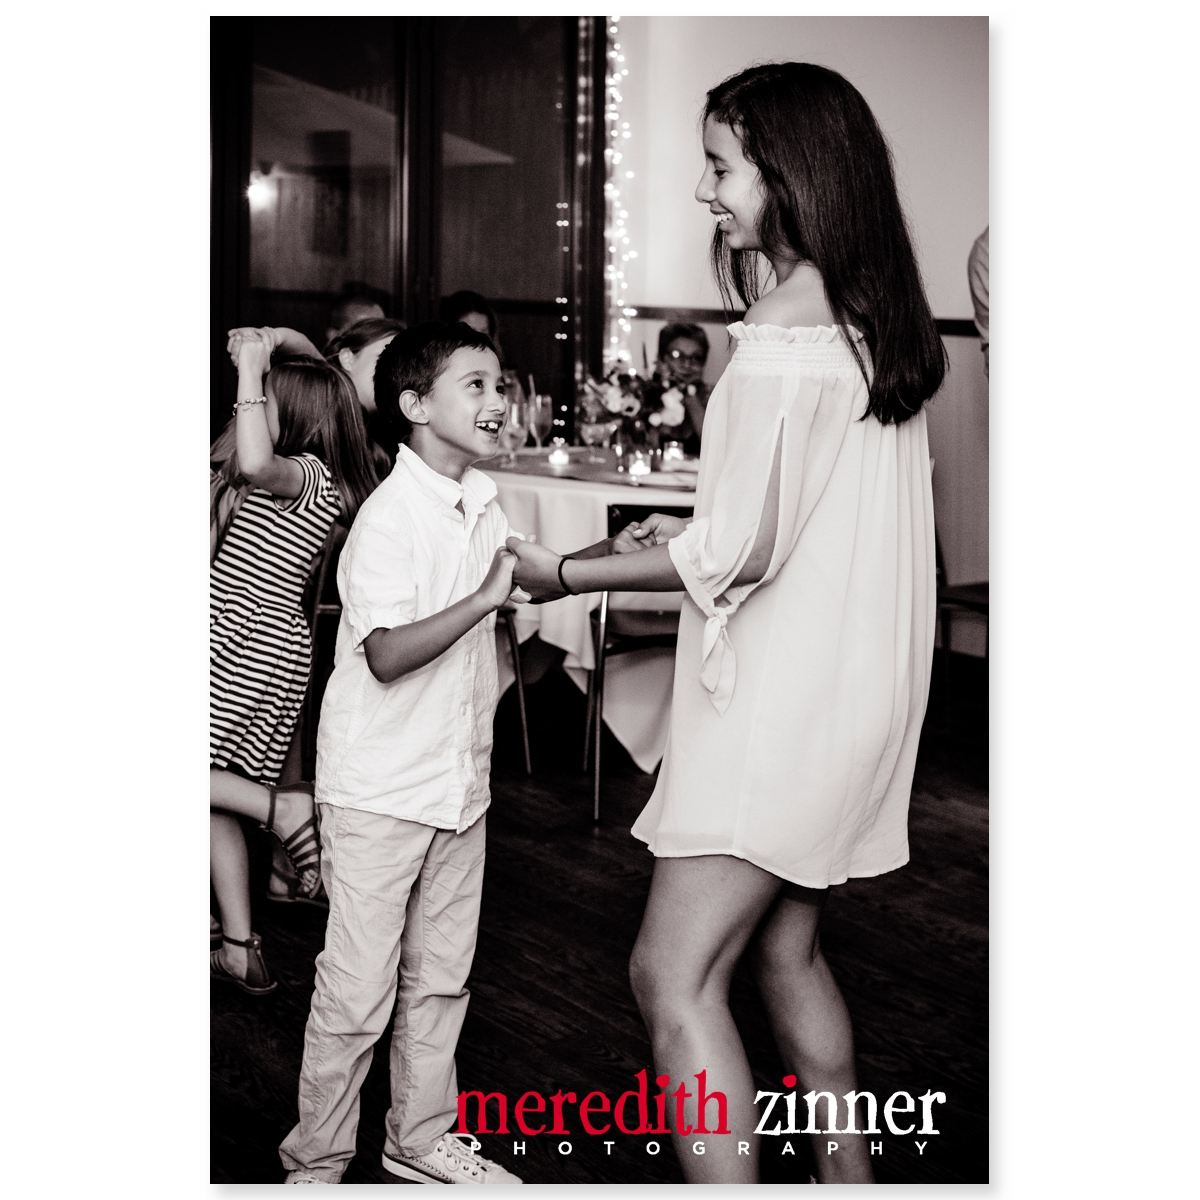 Meredith_Zinner_Photography_StilesCelebration_0355